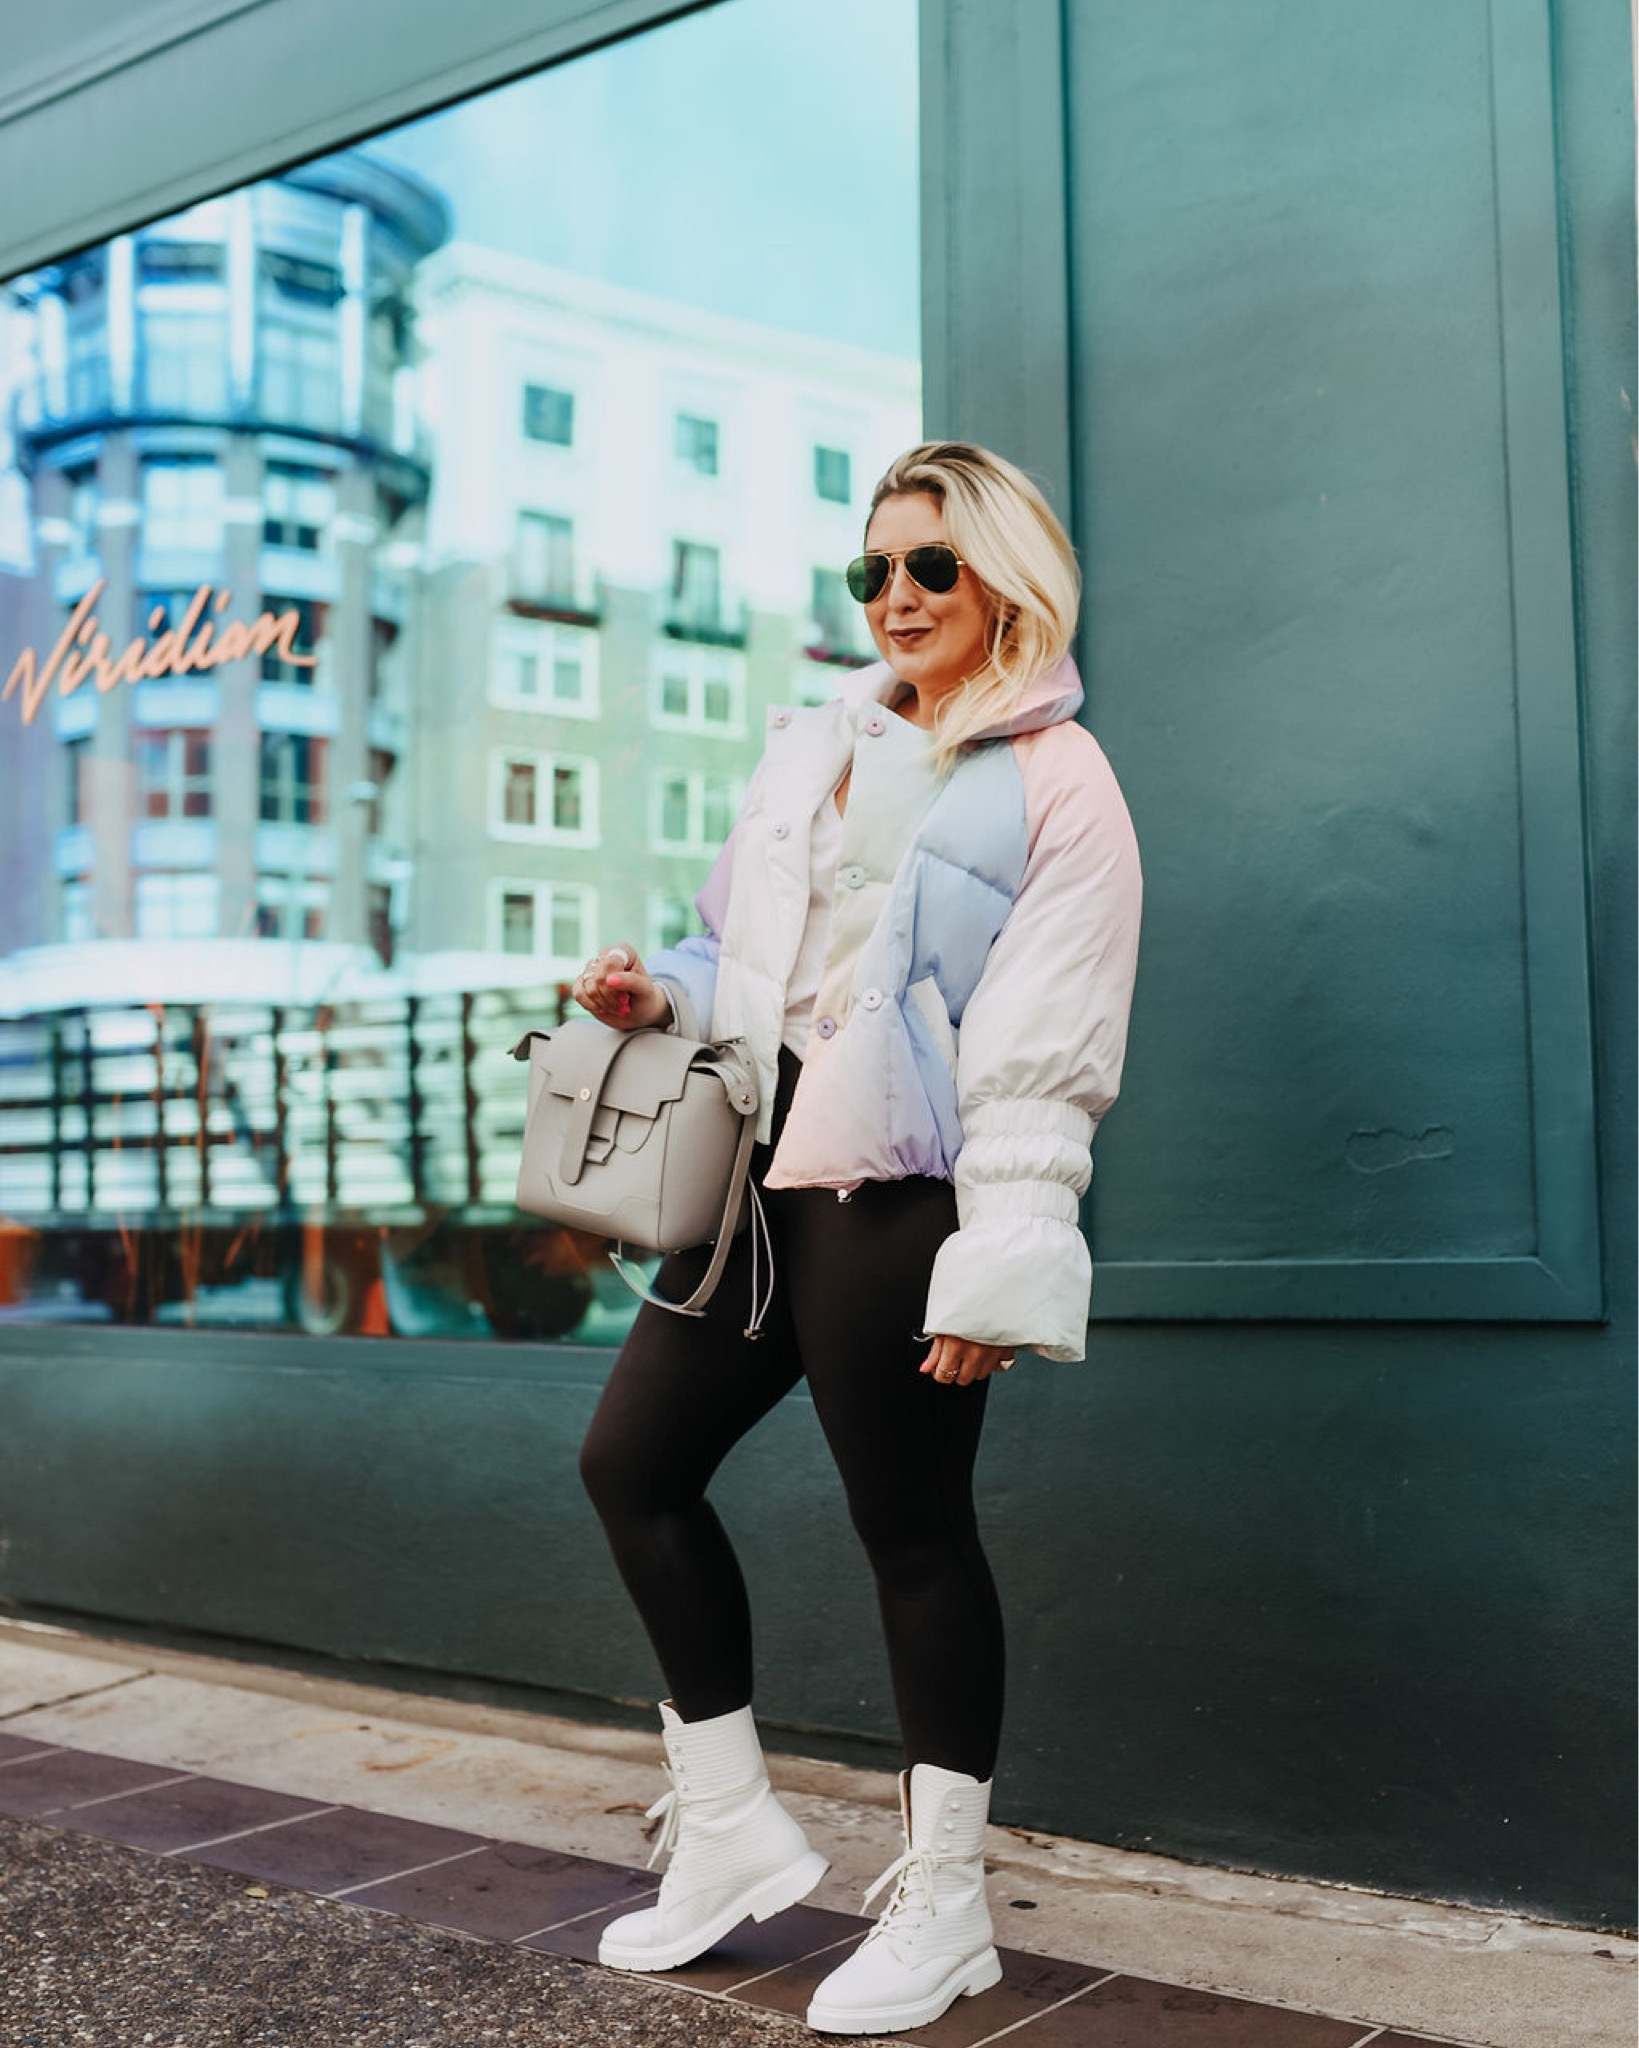 Katwalksf wearing a rainbow ombre puffer and spanx leather leggings in Oakland.